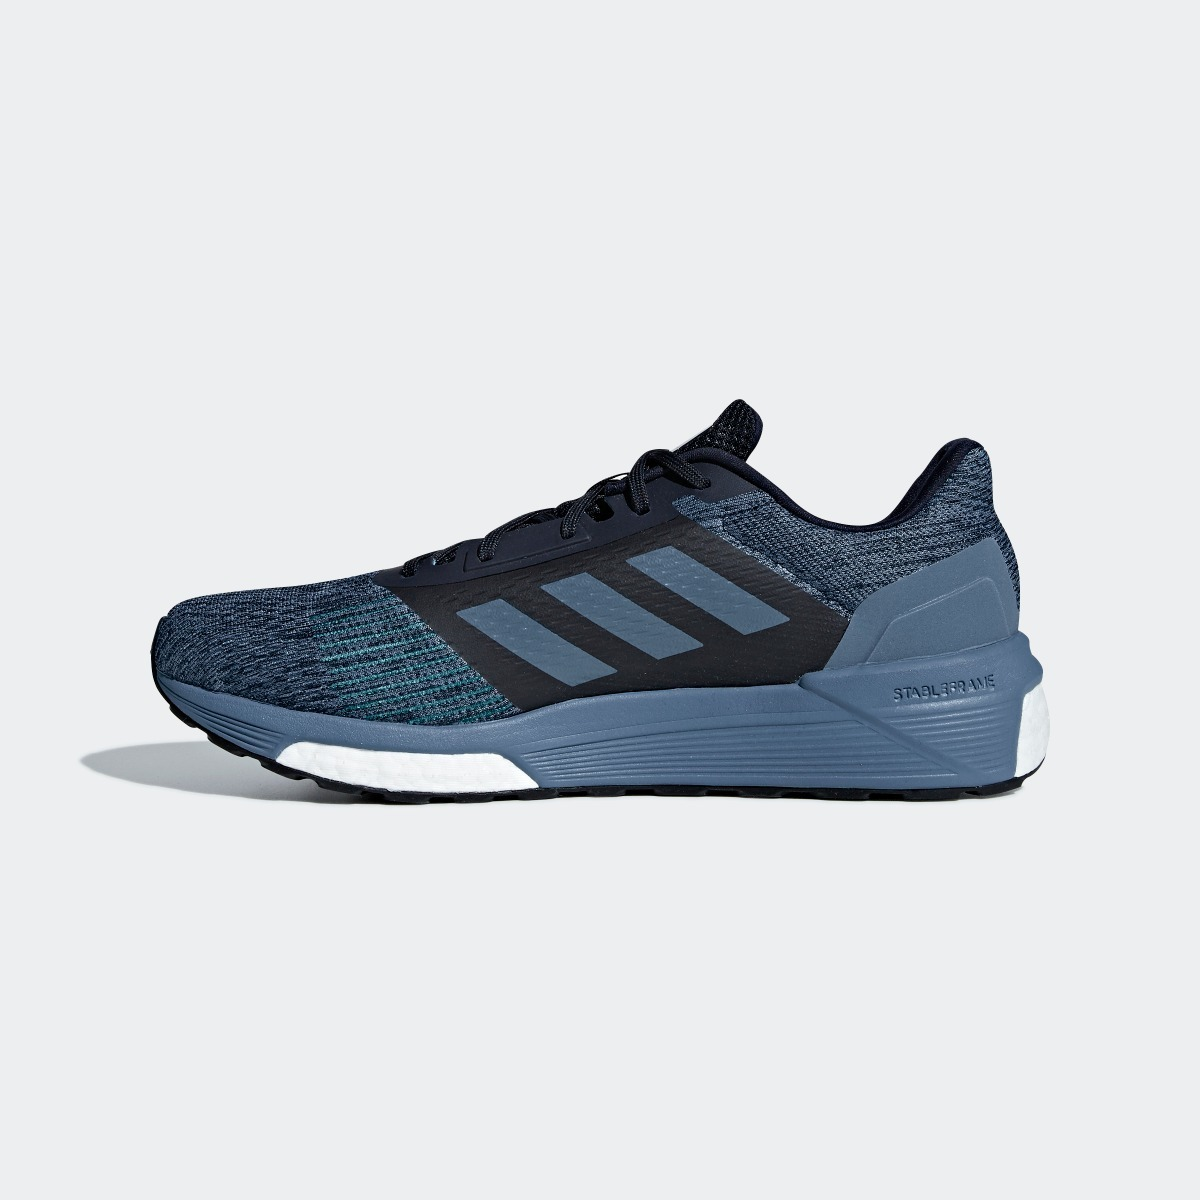 new concept aa40d c7b11 adidas solar drive st structures